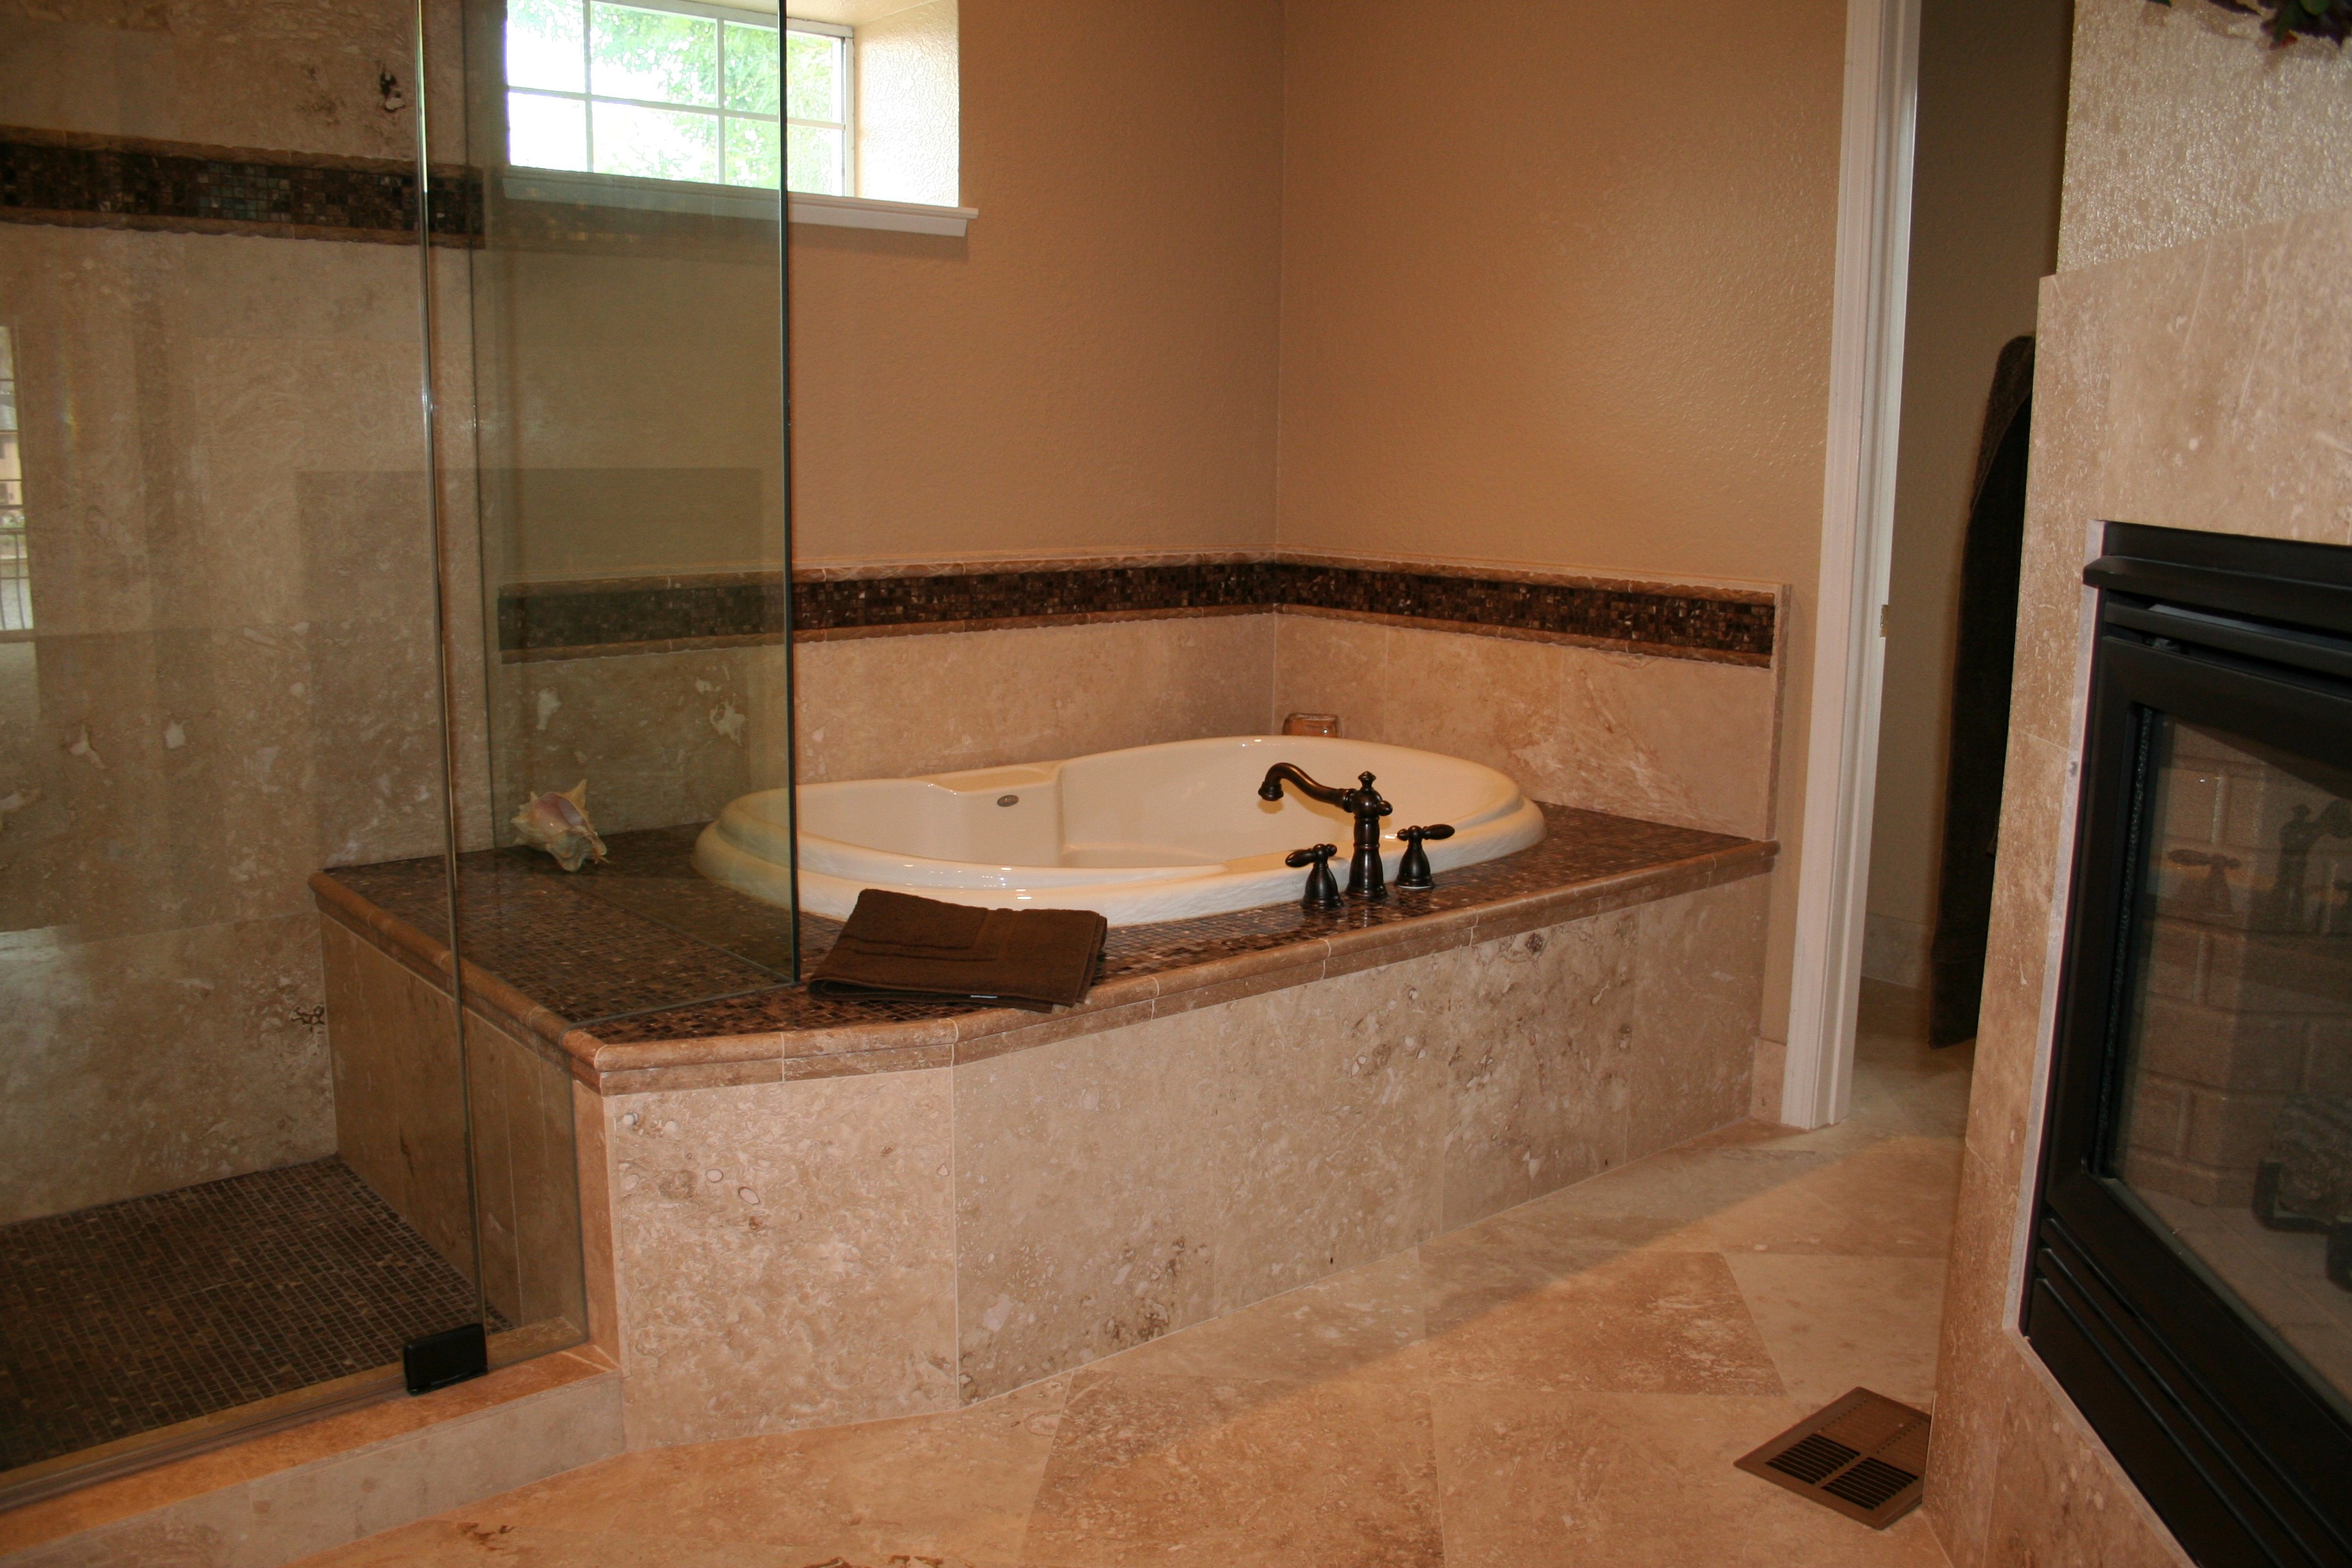 Remodel Bathroom remodel small bathroom with shower Bathroom Remodel Sacramento Projects By Yancey Company